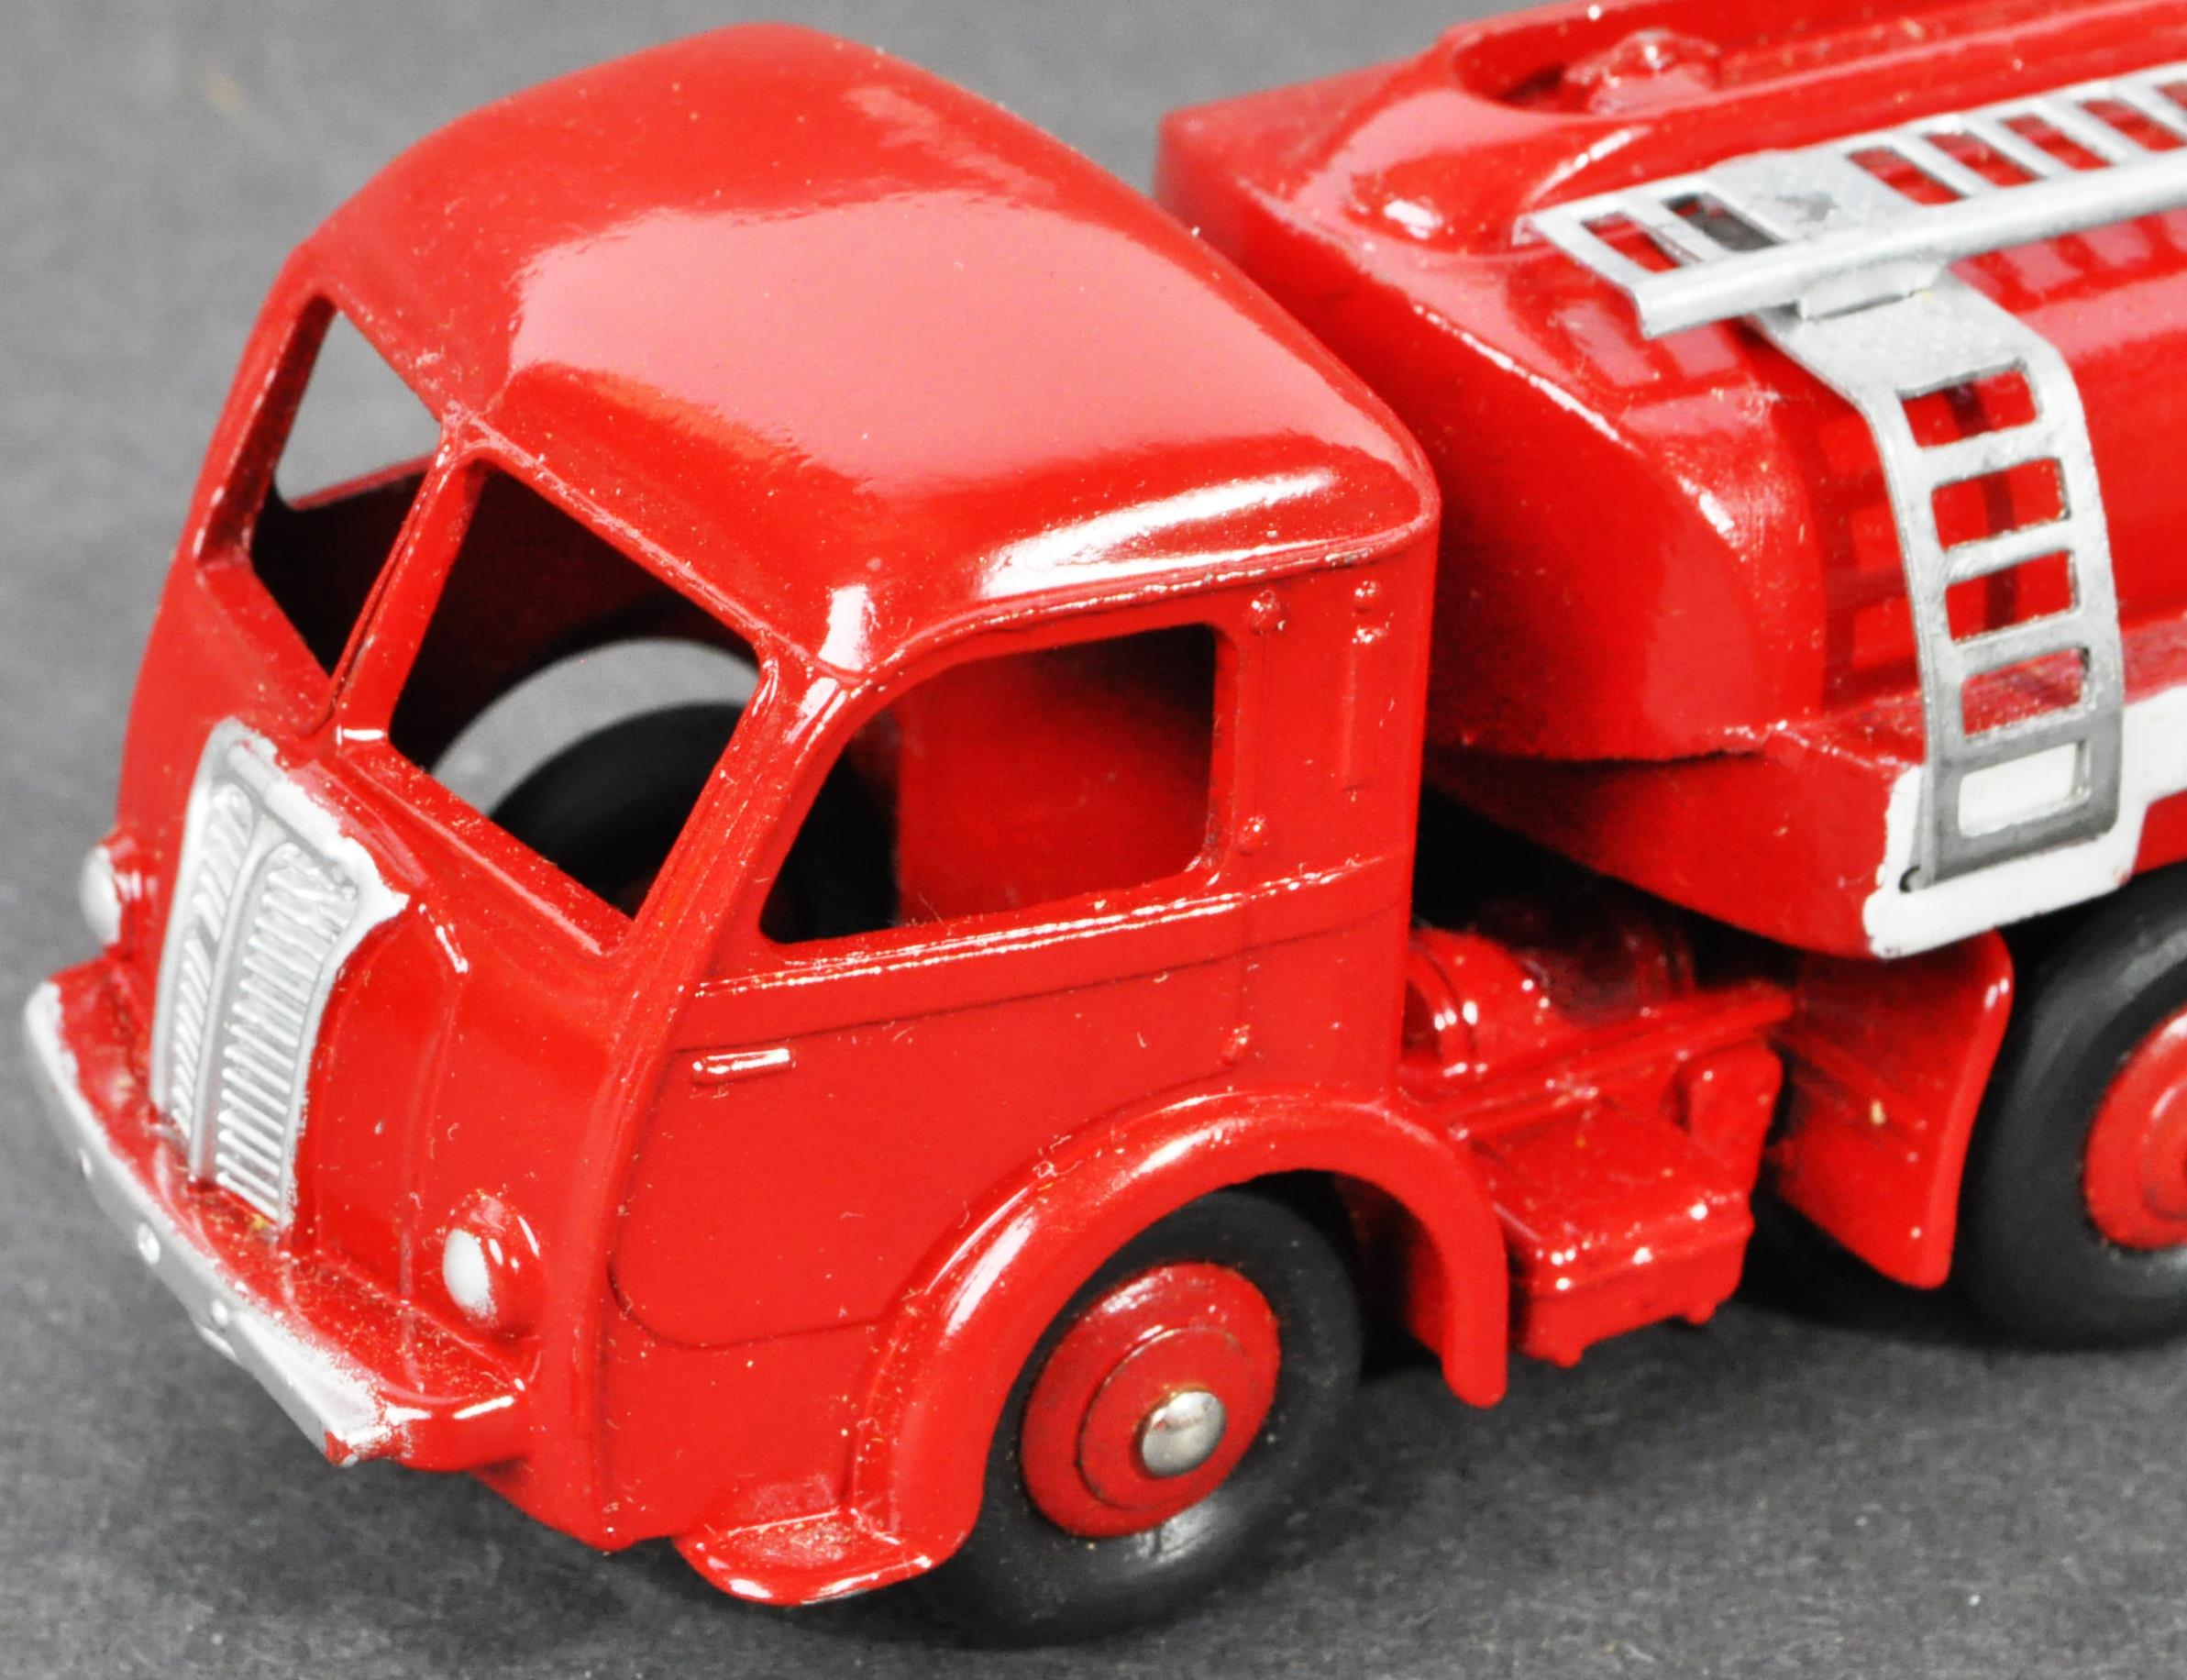 FRENCH DINKY TOYS - ORIGINAL BOXED VINTAGE DIECAST MODEL - Image 4 of 7